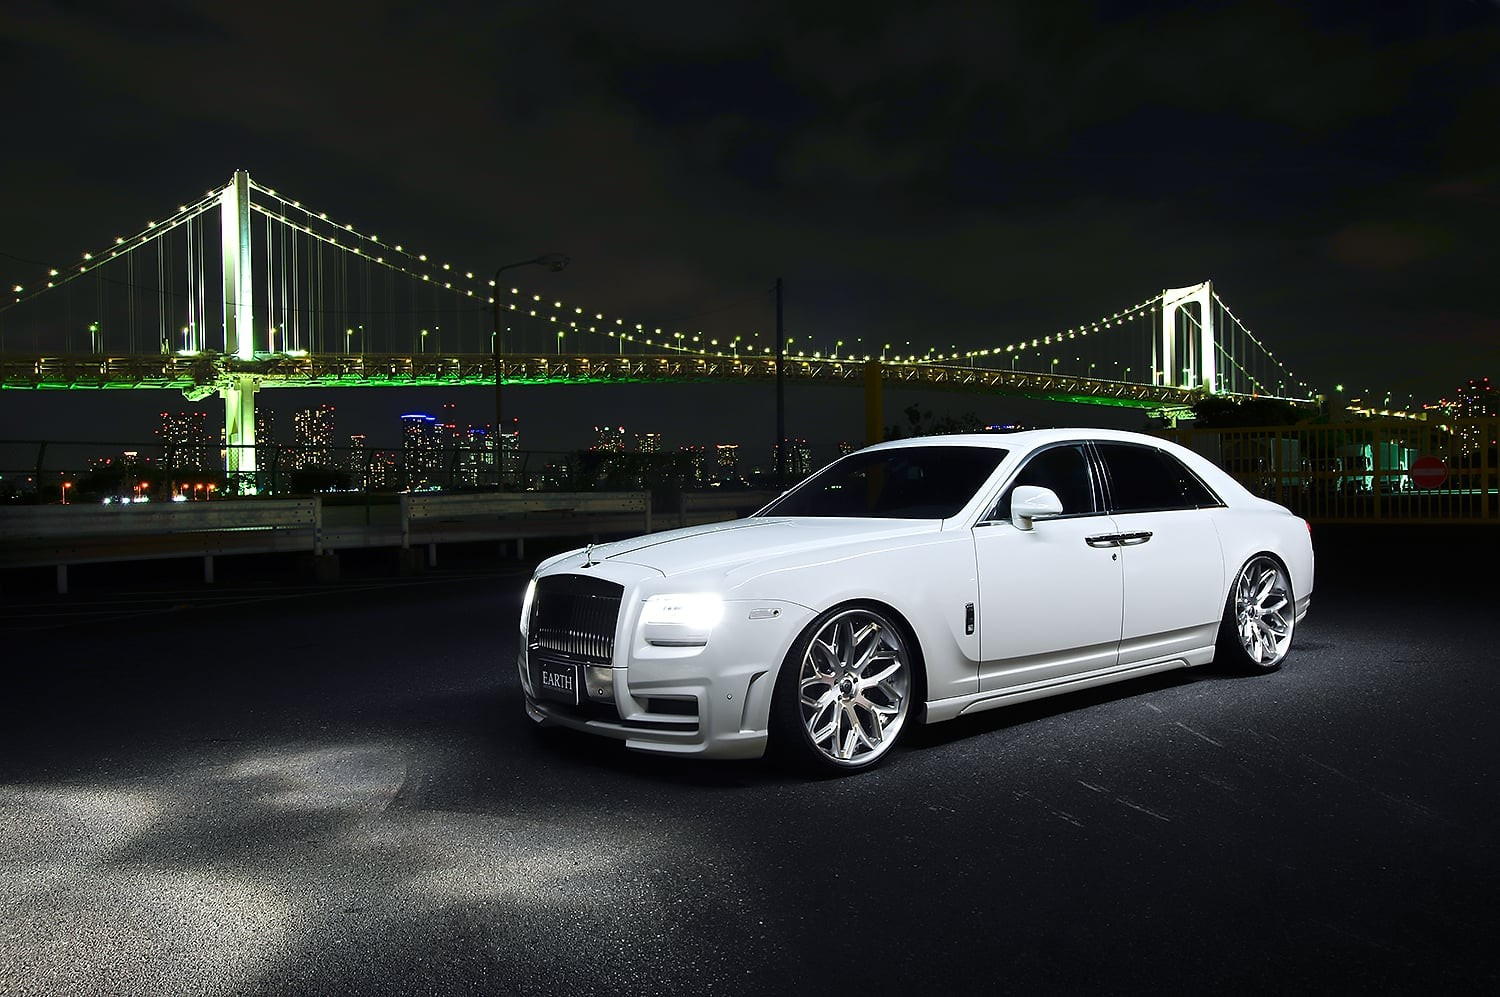 White Rolls Royce Ghost on LC-750 Wheels